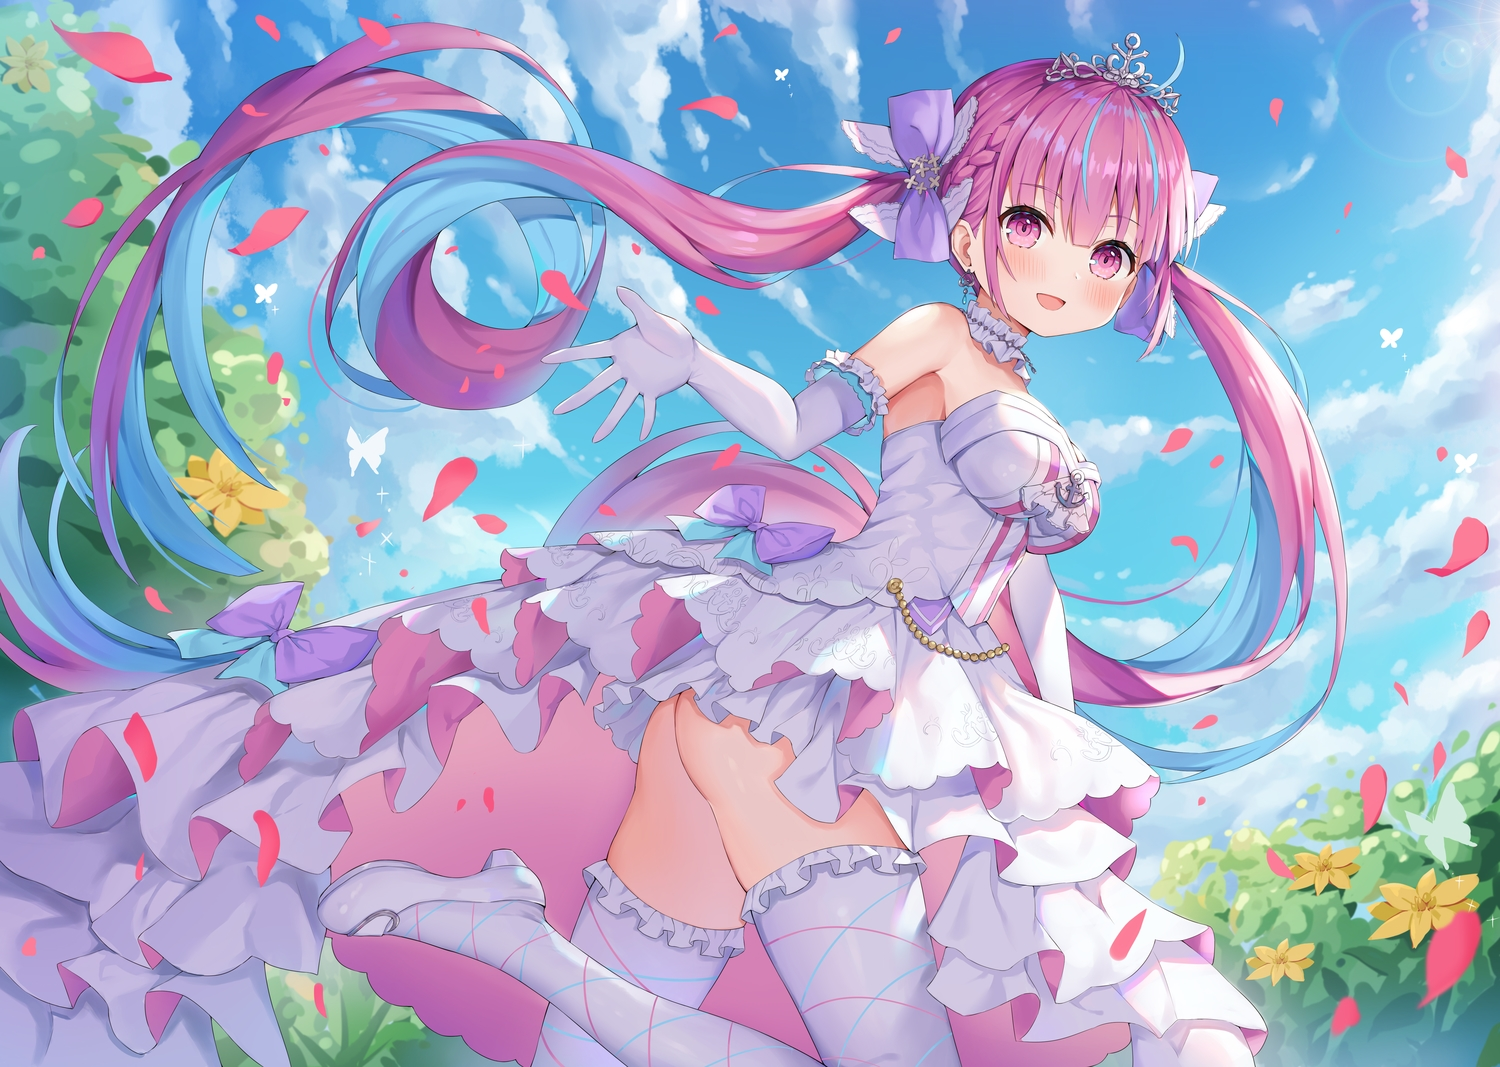 ass hokori_sakuni hololive long_hair minato_aqua nopan pink_eyes pink_hair thighhighs tiara twintails wedding_attire